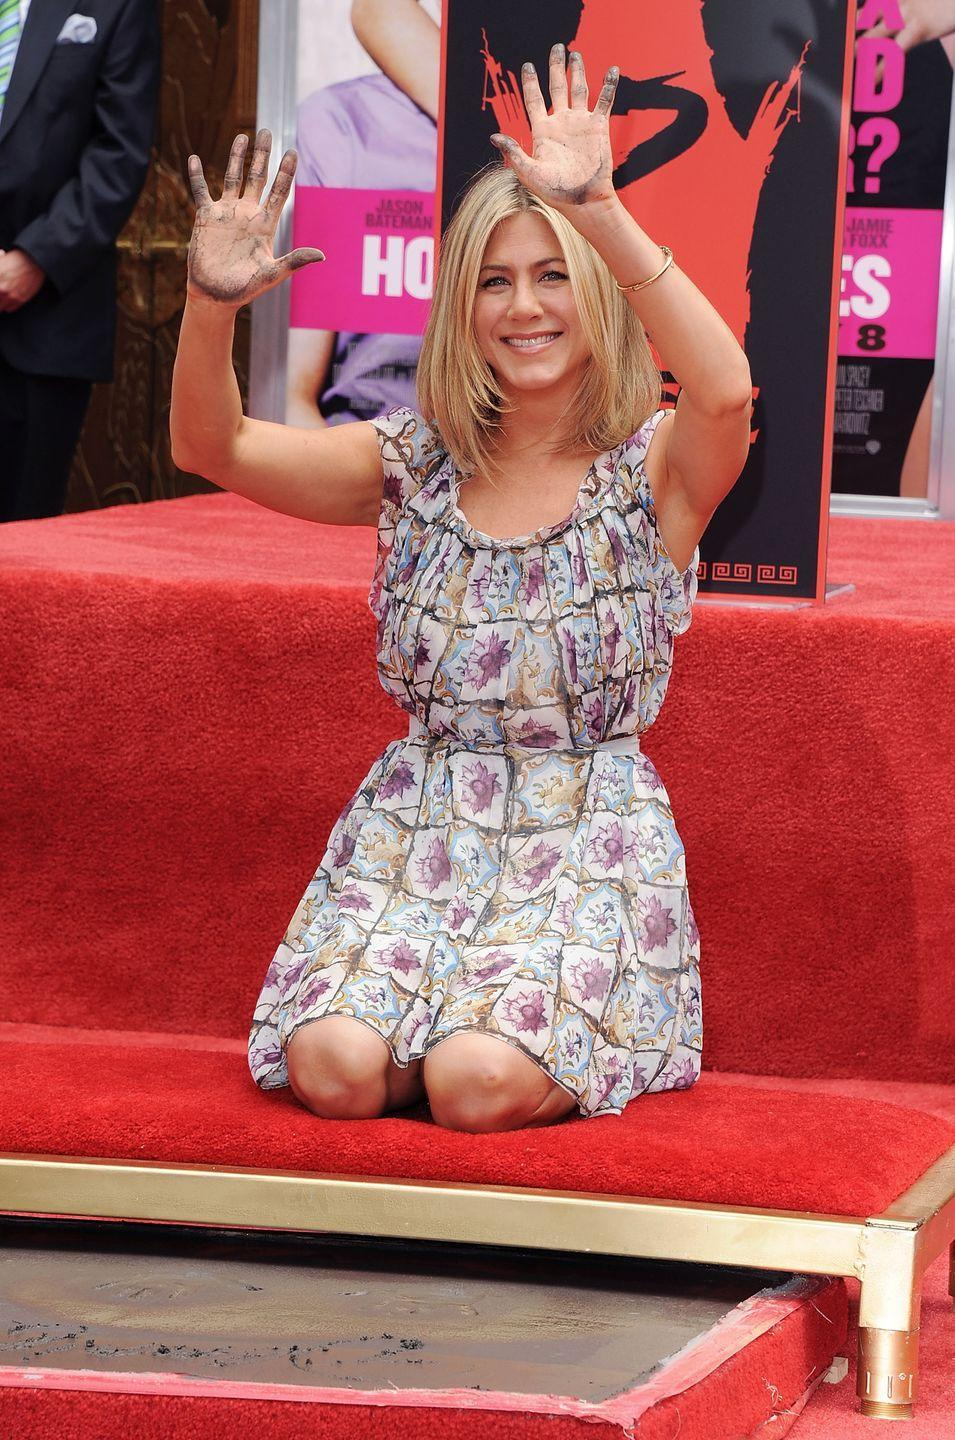 <p>Jen rightfully got her star on the Hollywood Walk of Fame in 2011. Adam Sandler, Kathryn Hahn and Malin Akerman were there to celebrate with her.<br></p>